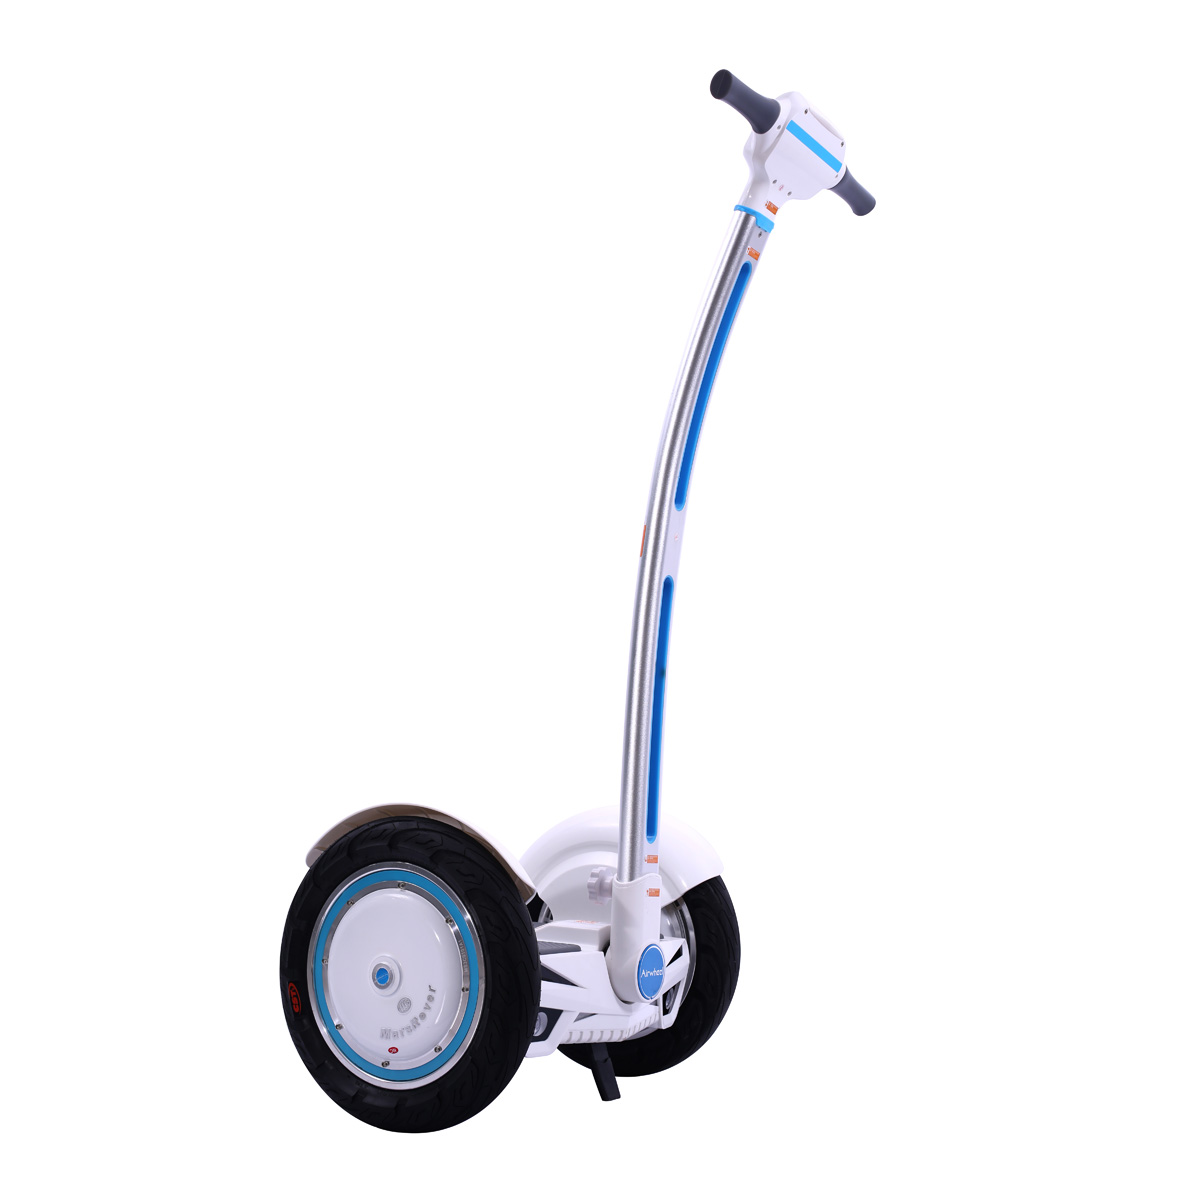 Airwheel S3 / S3T